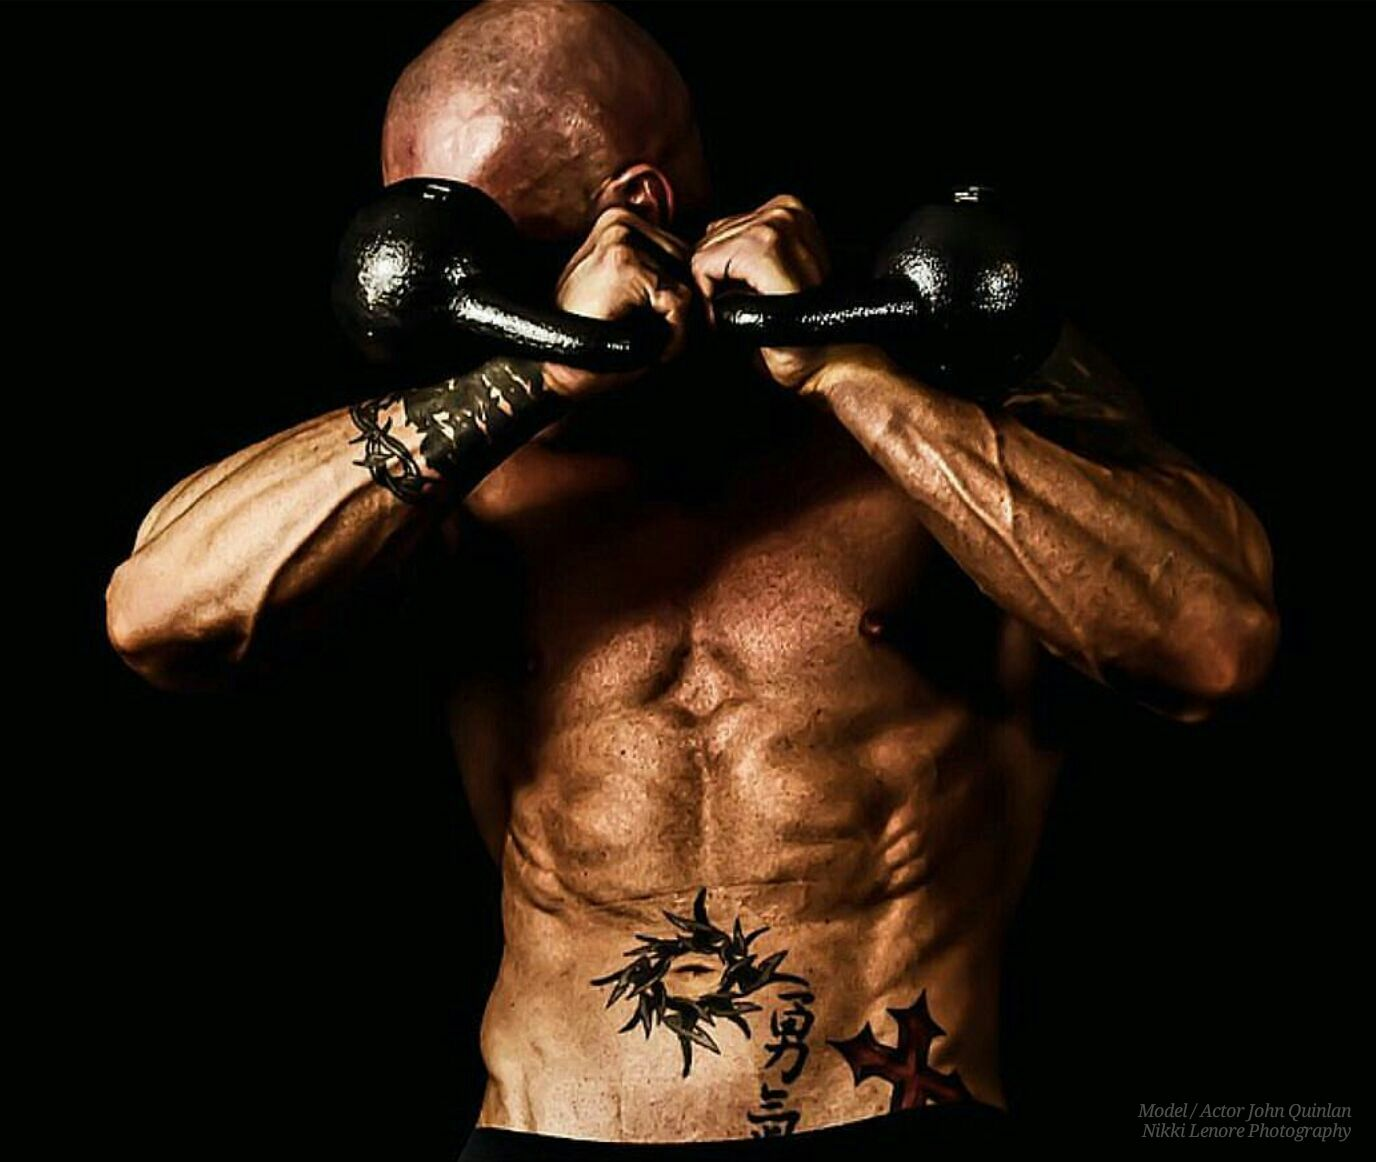 Model & Actor John Joseph Quinlan Fitness Kettlebells & Abs by Nikki Lenore #JohnQuinlan